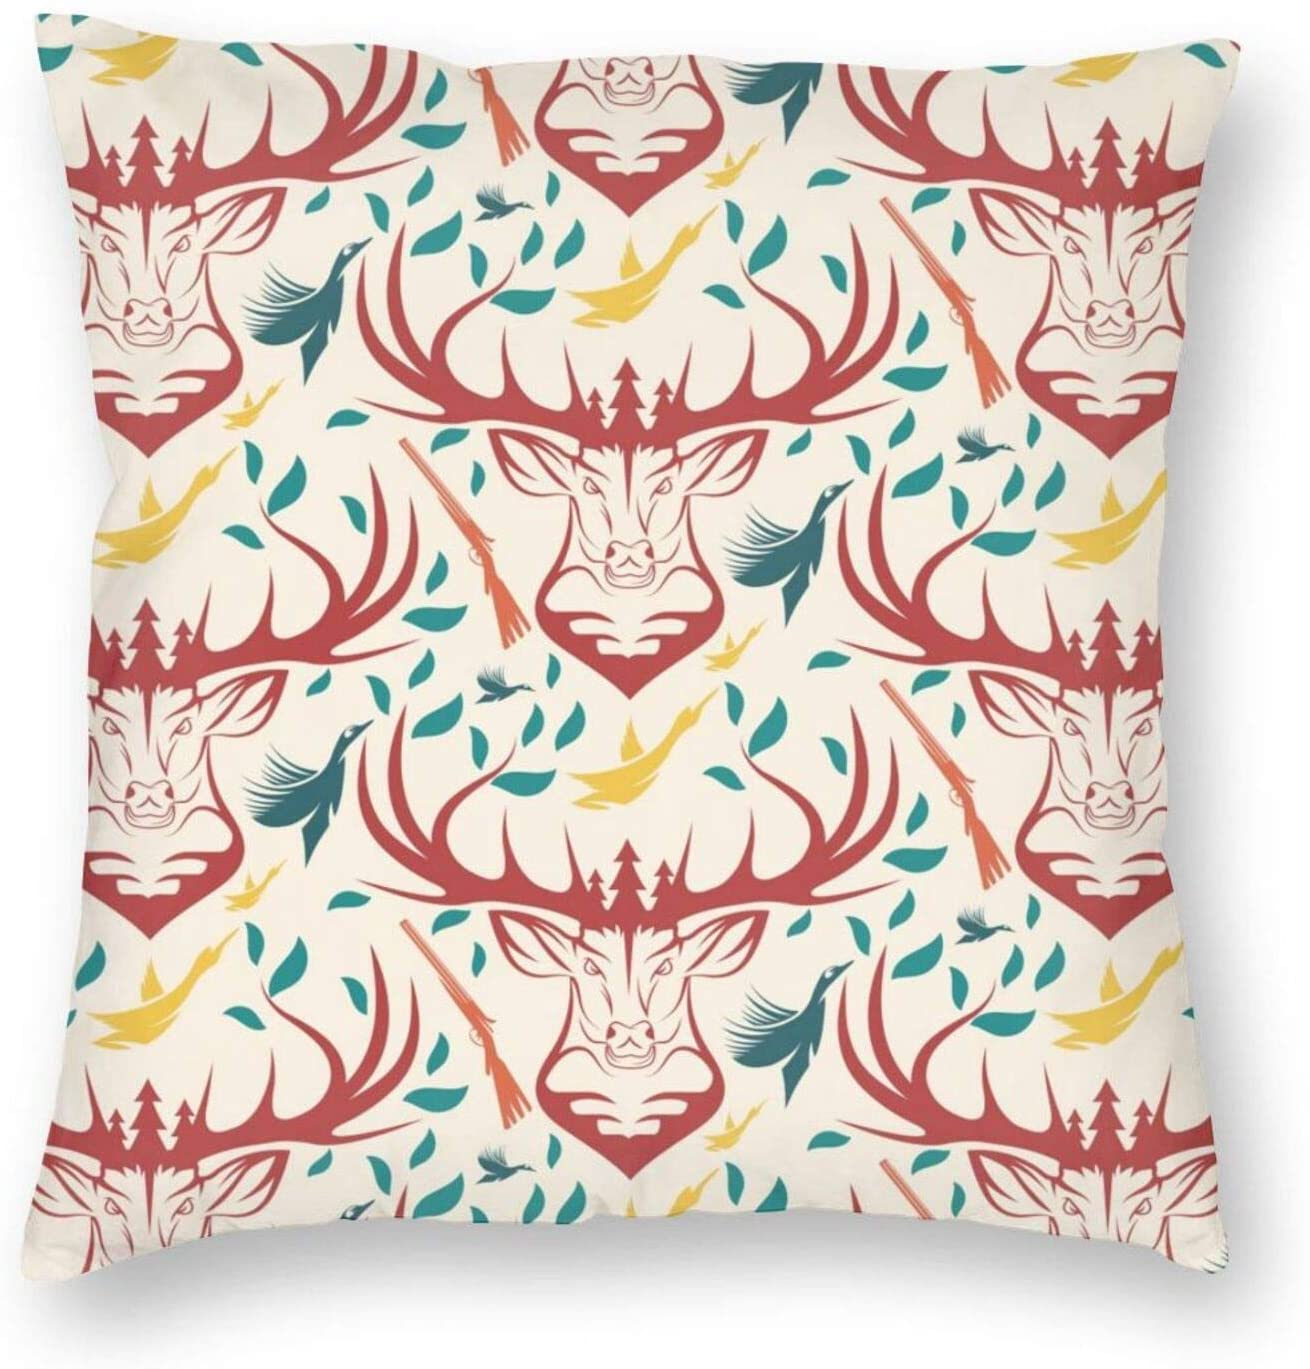 antkondnm Hunting Theme with Deer Duck Pillow Covers Decorative Square Throw Pillow Covers Cushion Cases Home Decor for Sofa Bedroom Car 18x18 Inch